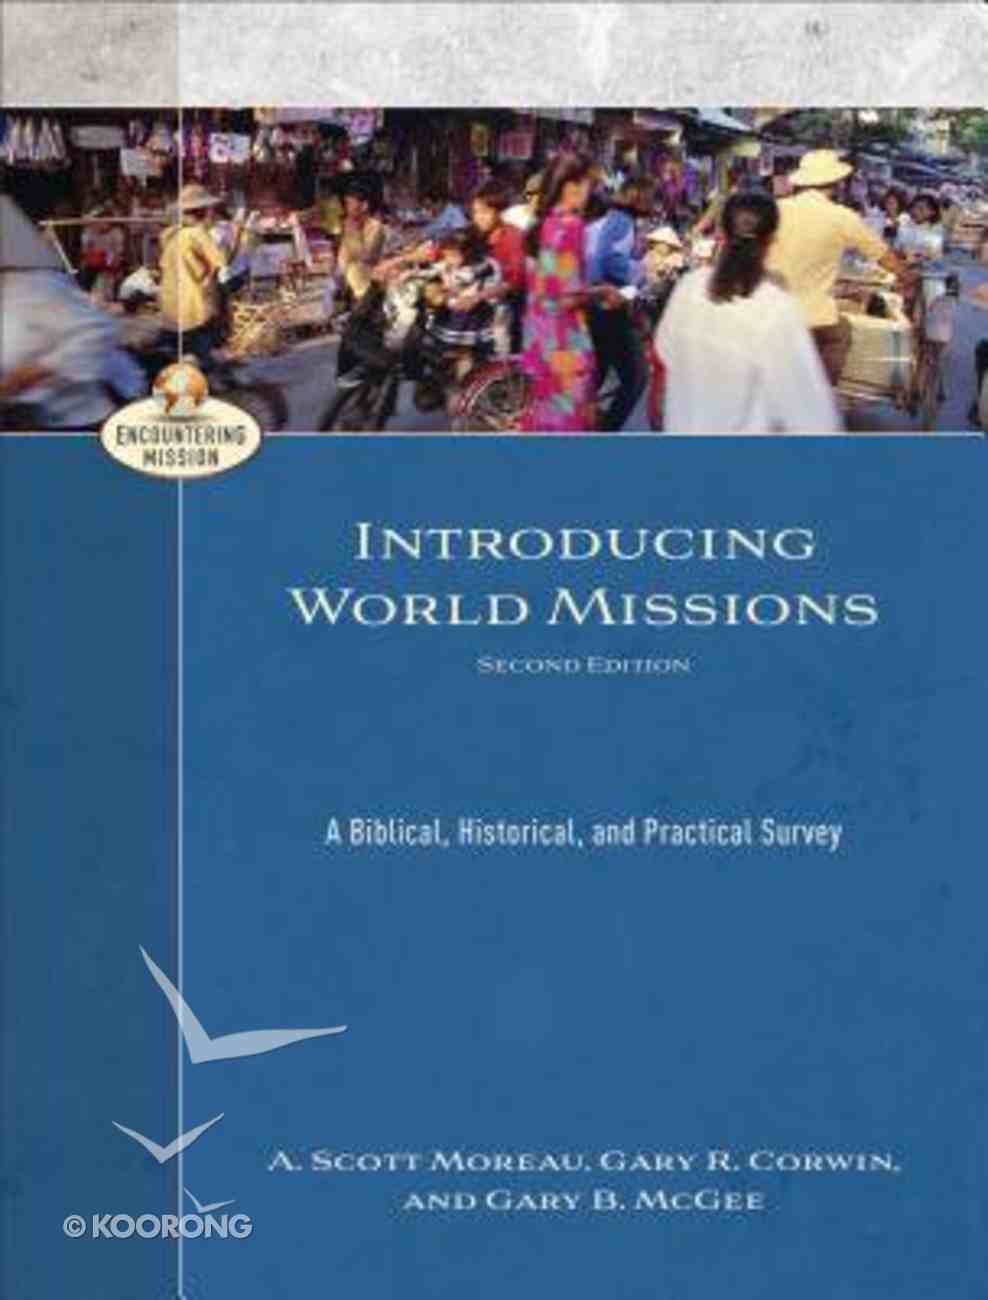 Introducing World Missions - a Biblical, Historical, and Practical Survey (Second Edition) (Encountering Mission Series) Hardback